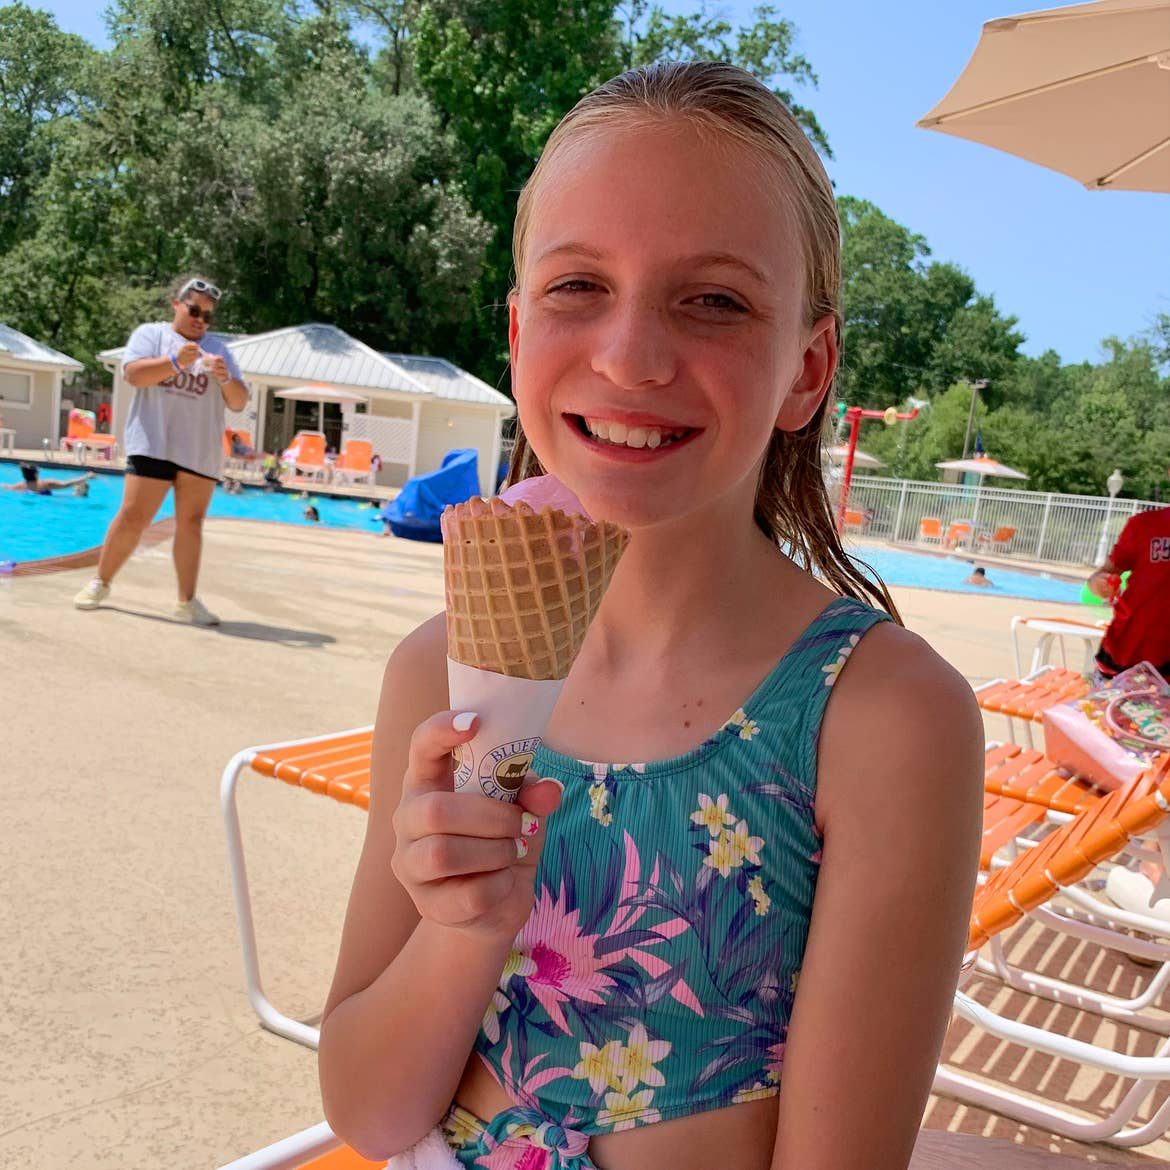 A caucasian girl eats an ice cream cone while wearing a swimsuit near a pool.